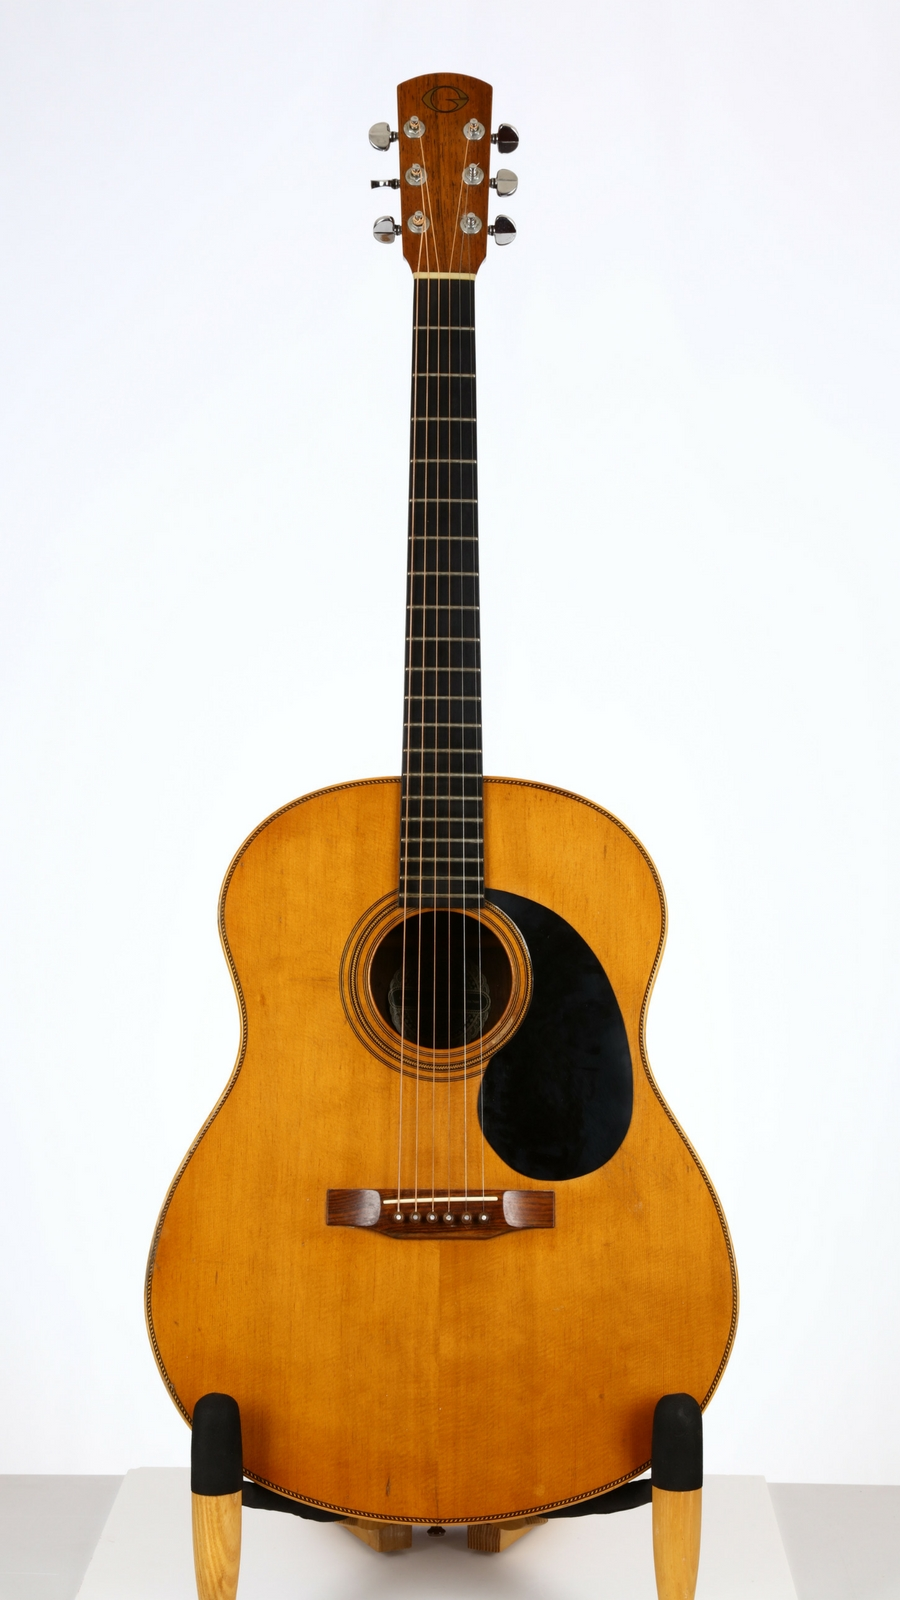 Michael Gurian acoustic guitar